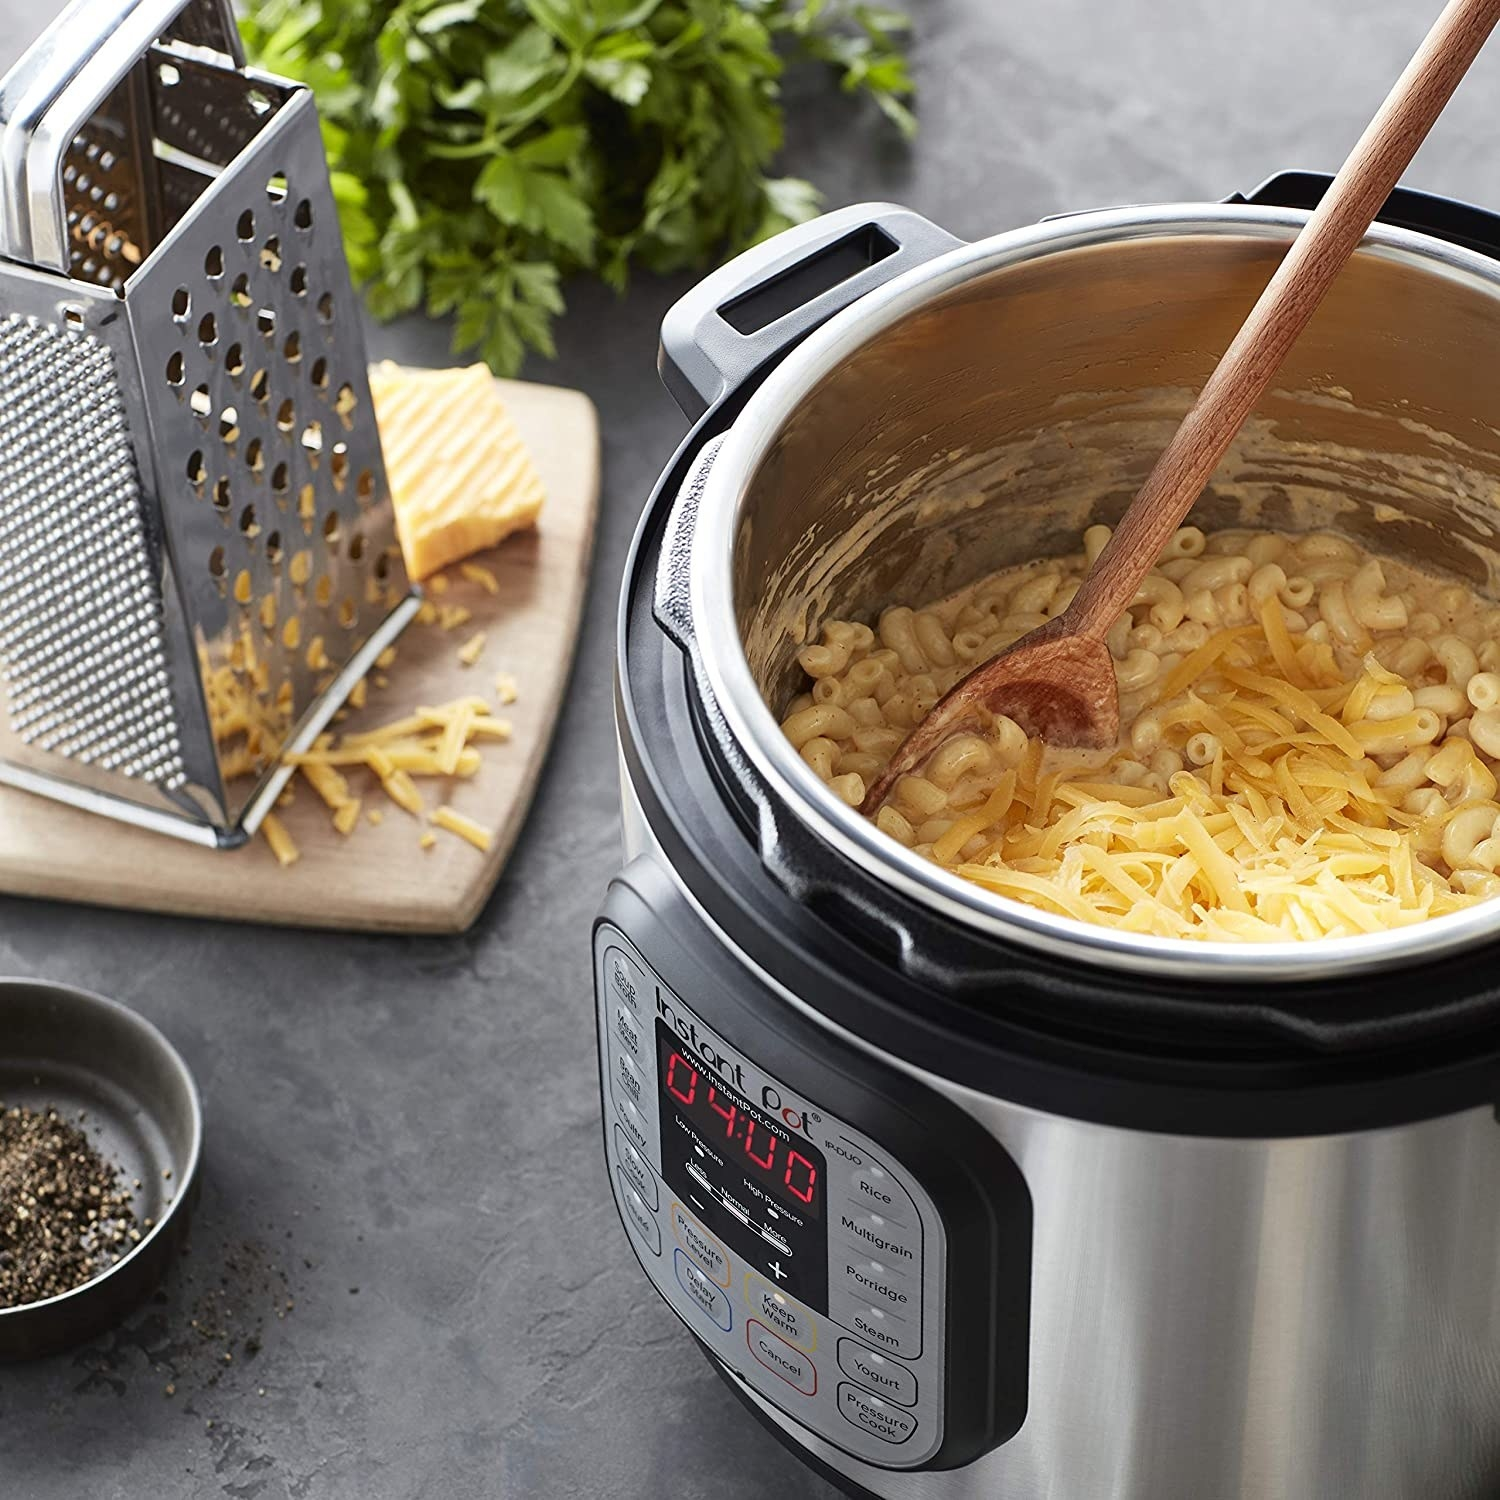 An Instant Pot with macaroni inside